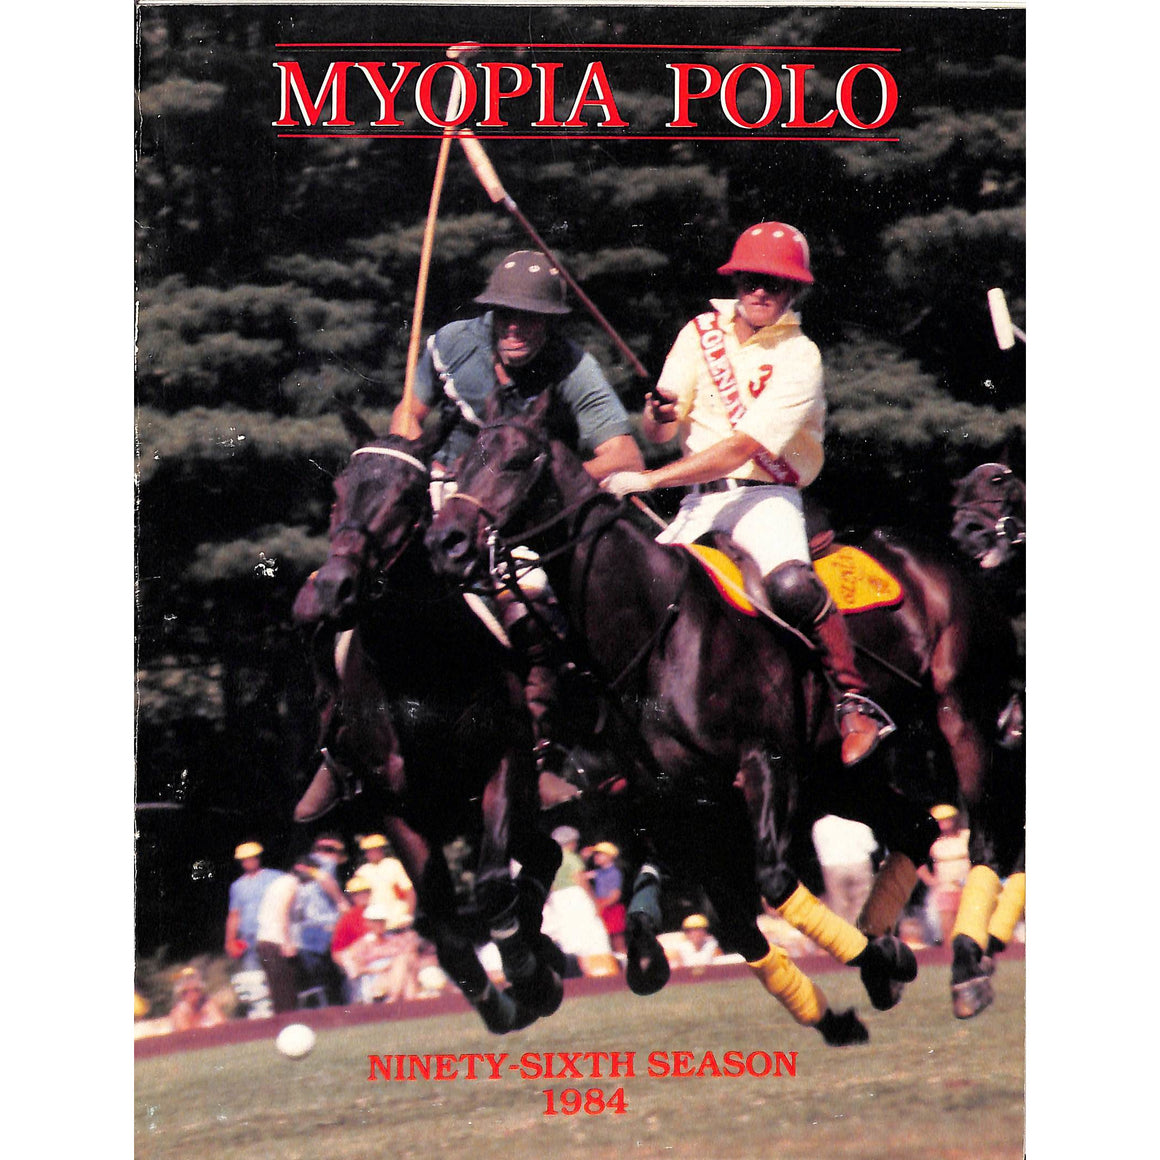 Myopia Polo 96th Season 1984